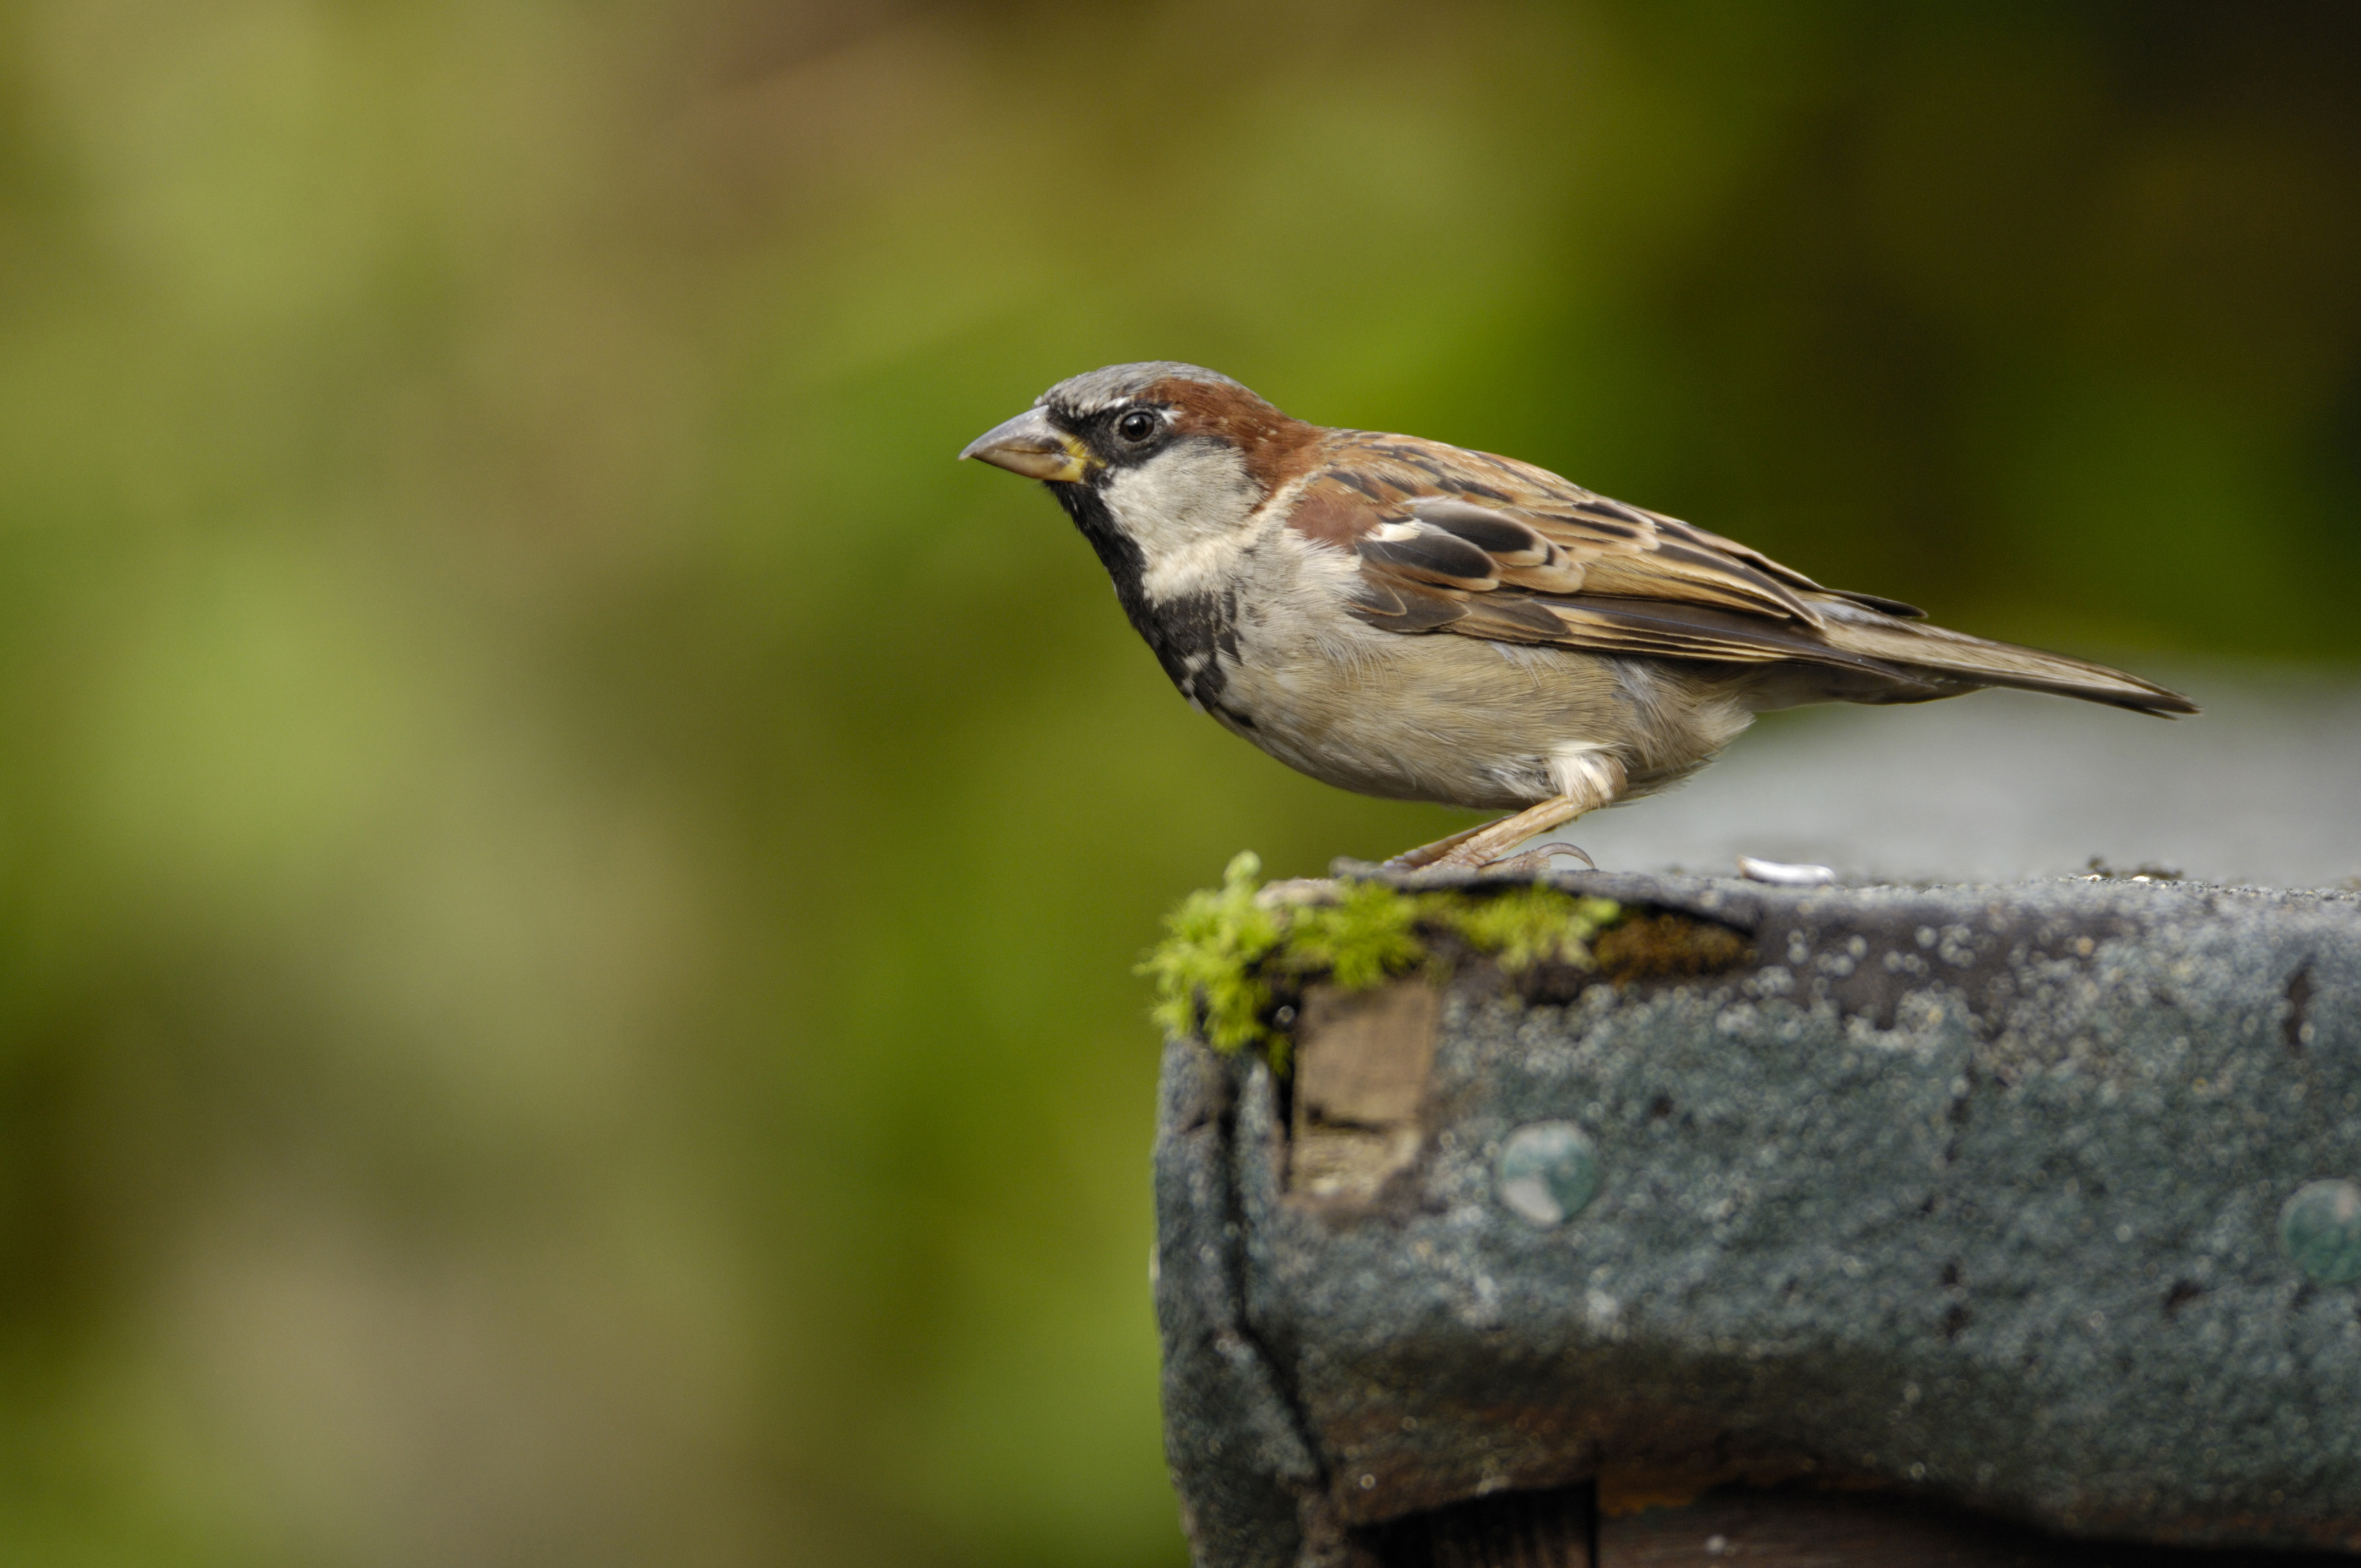 How can I Stop Birds Nesting in my Roof? - The RSPB